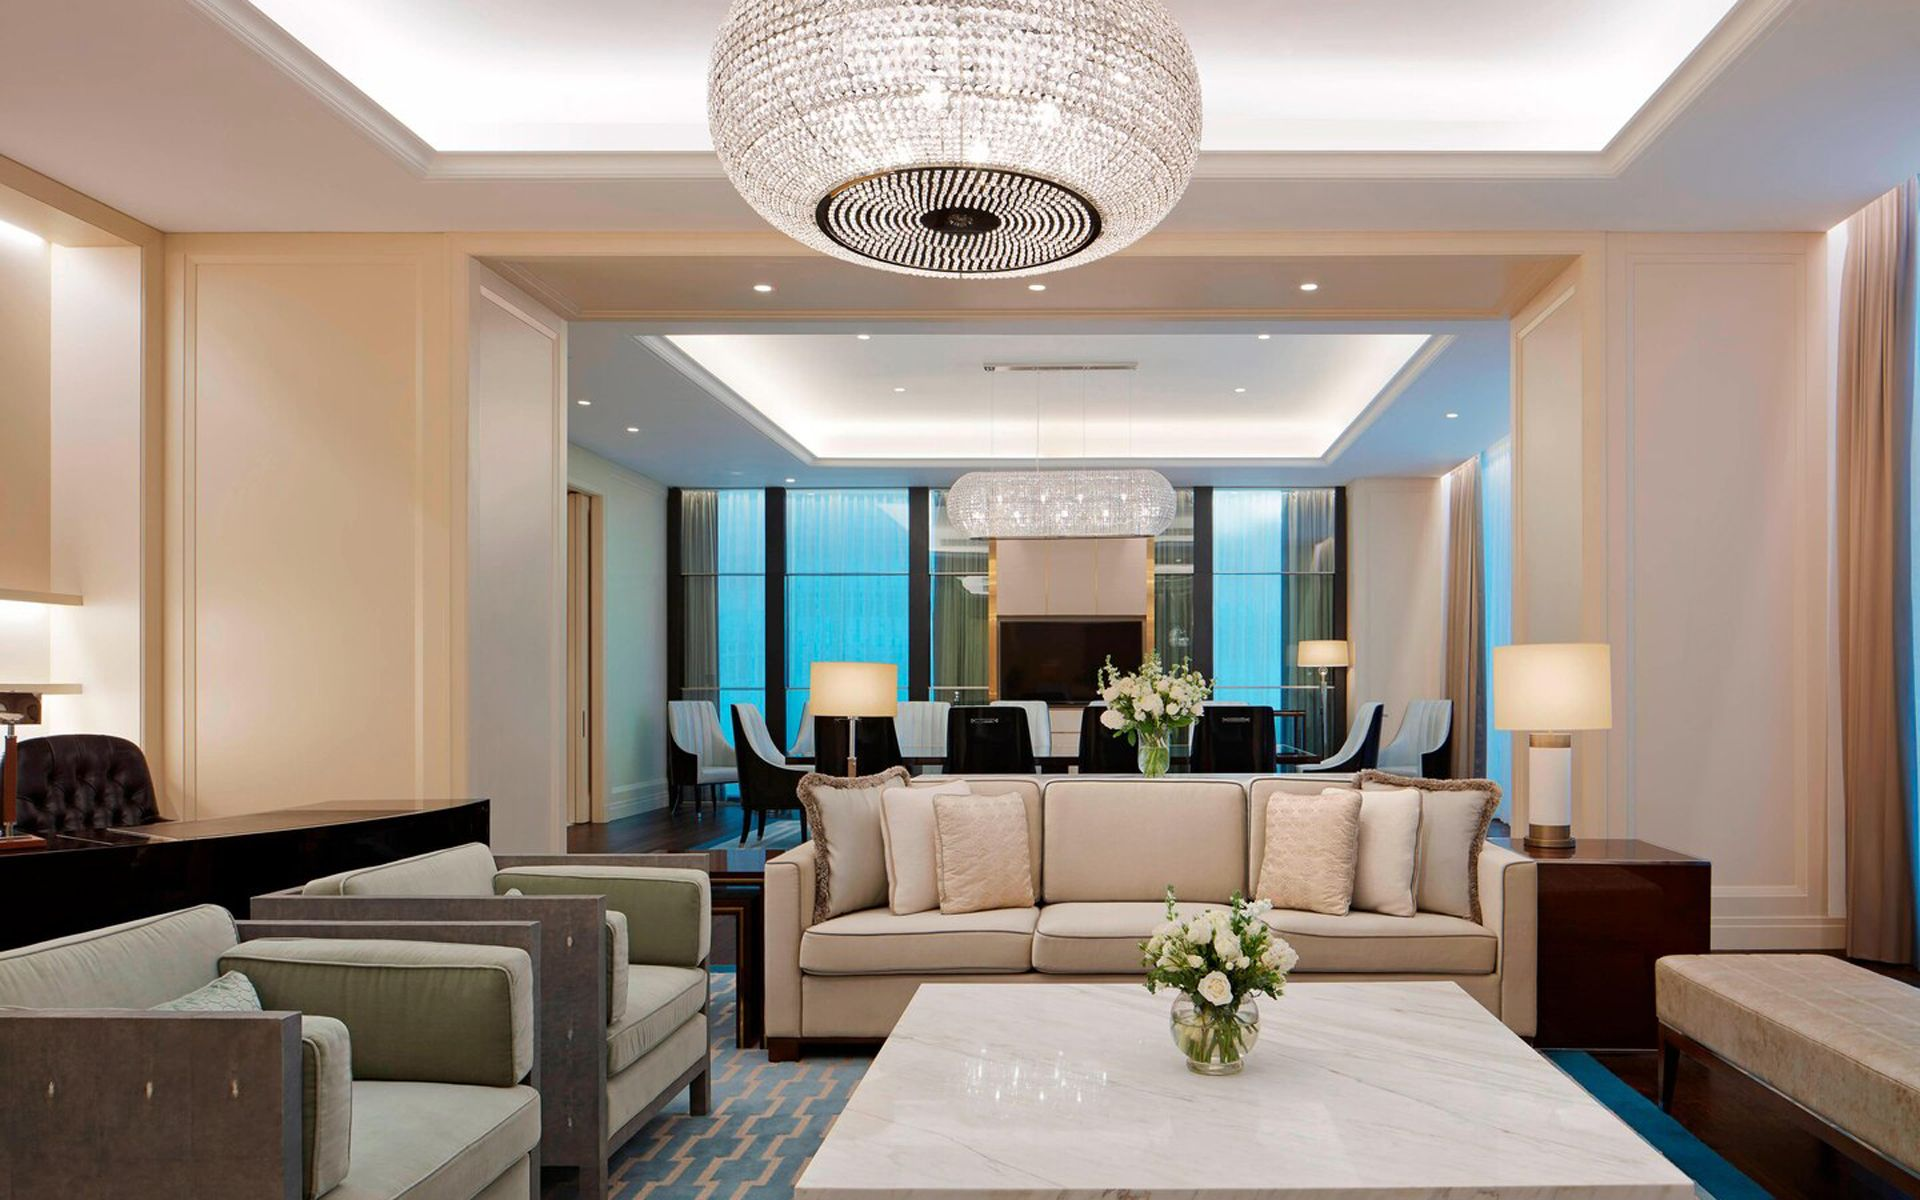 Malaysia's Most Expensive Hotel Suites & Villas